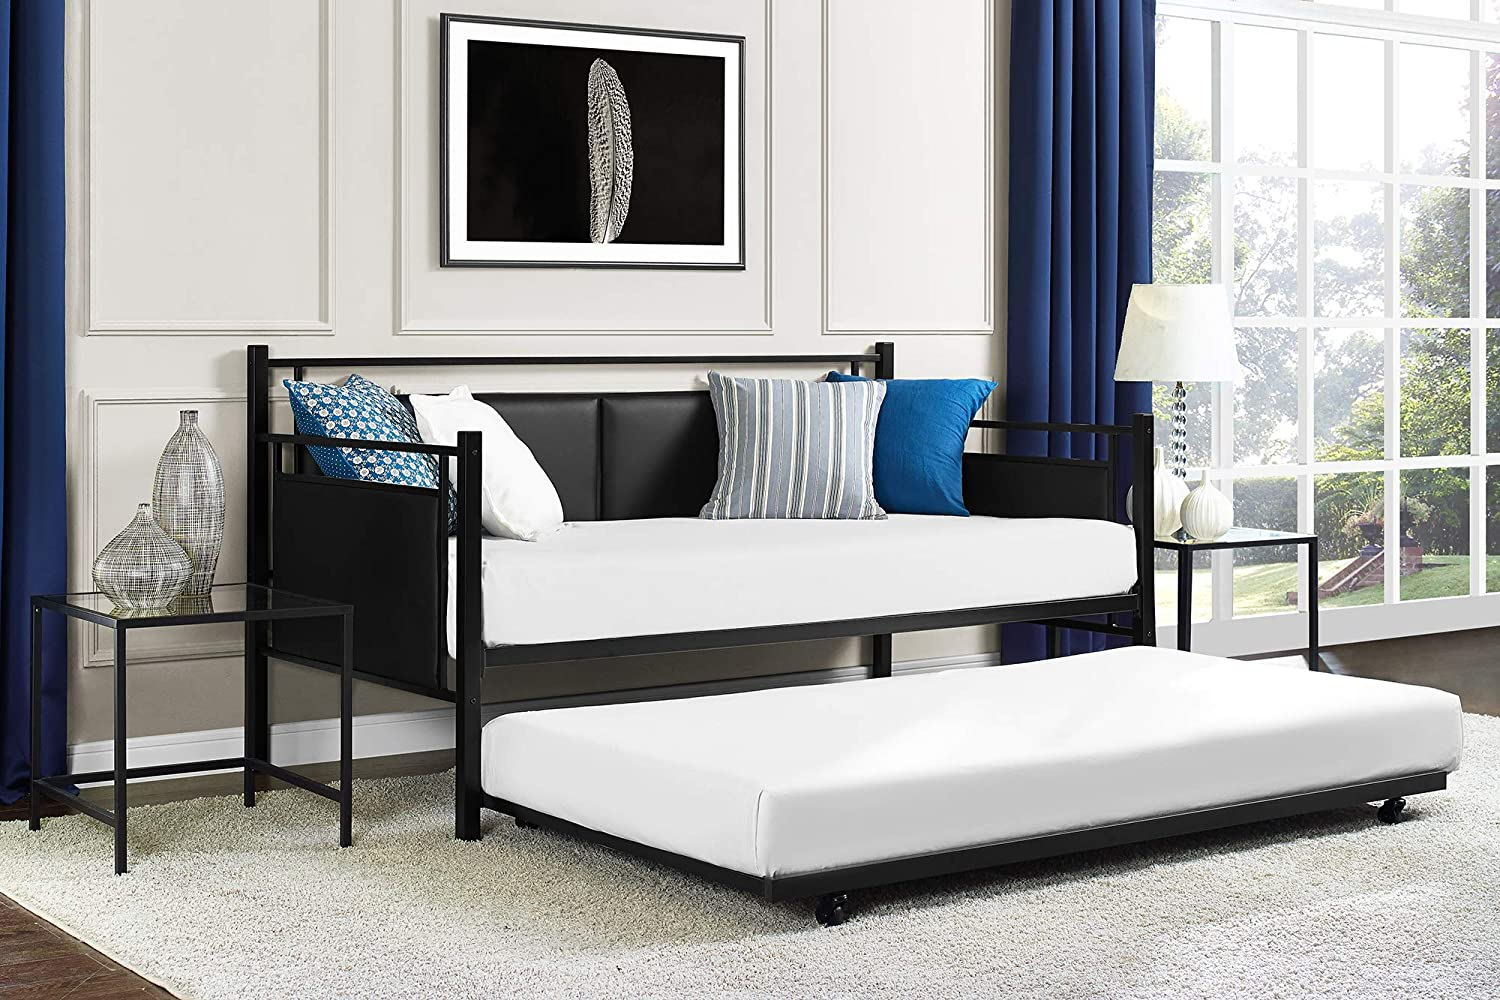 DHP Astoria Metal and Upholstered Daybed/Sofa Bed with Included Trundle, Twin Size Frame, Black